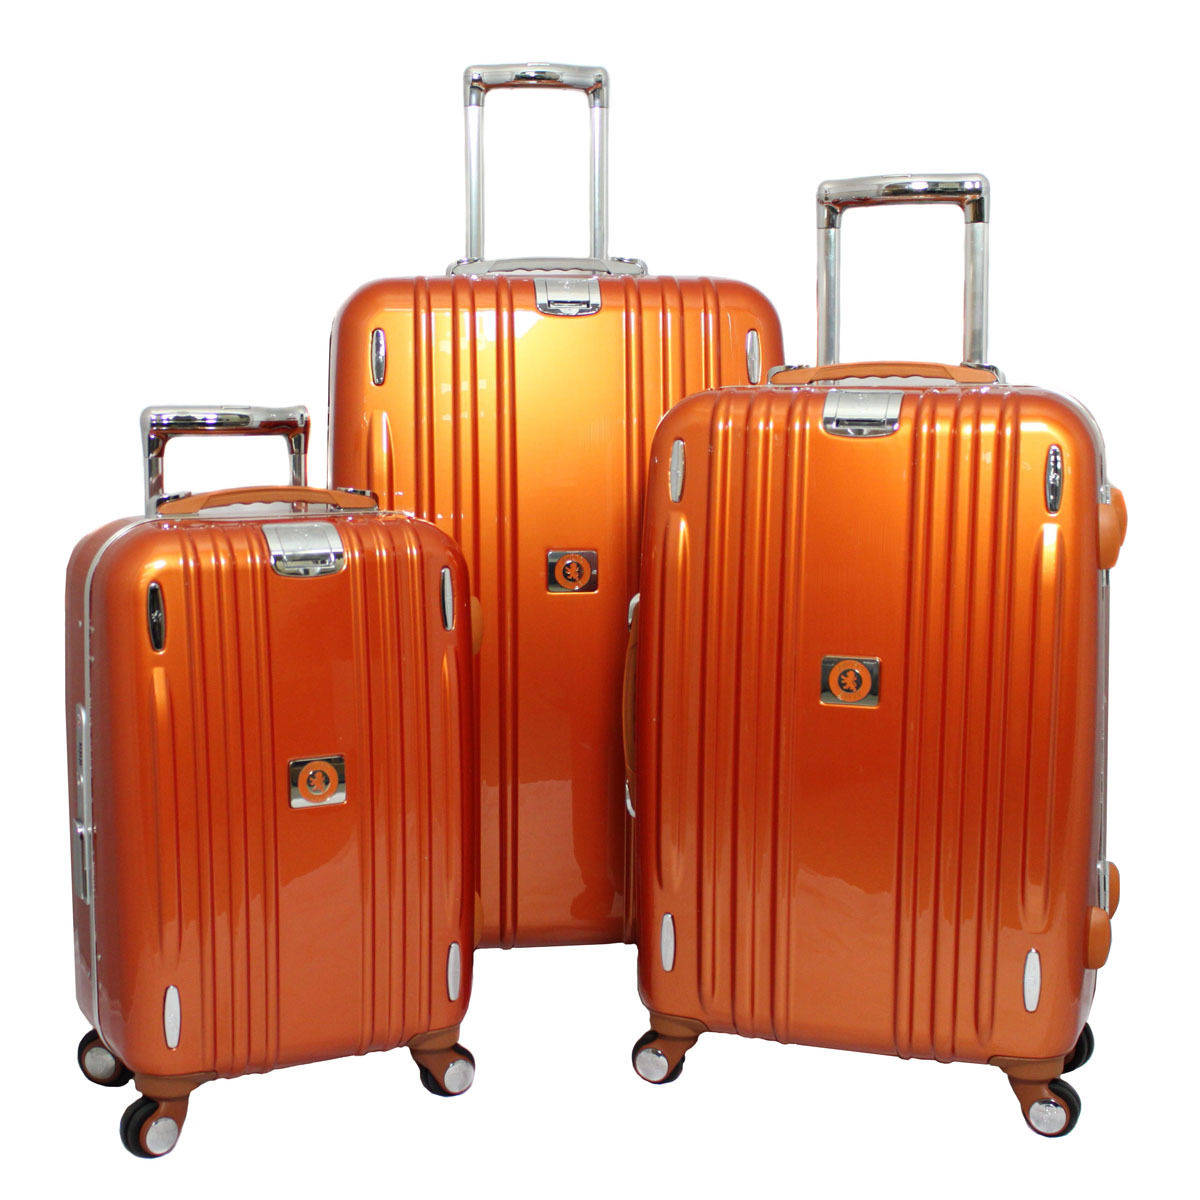 heys luggage luggage bag with wheels buy luggage bags online